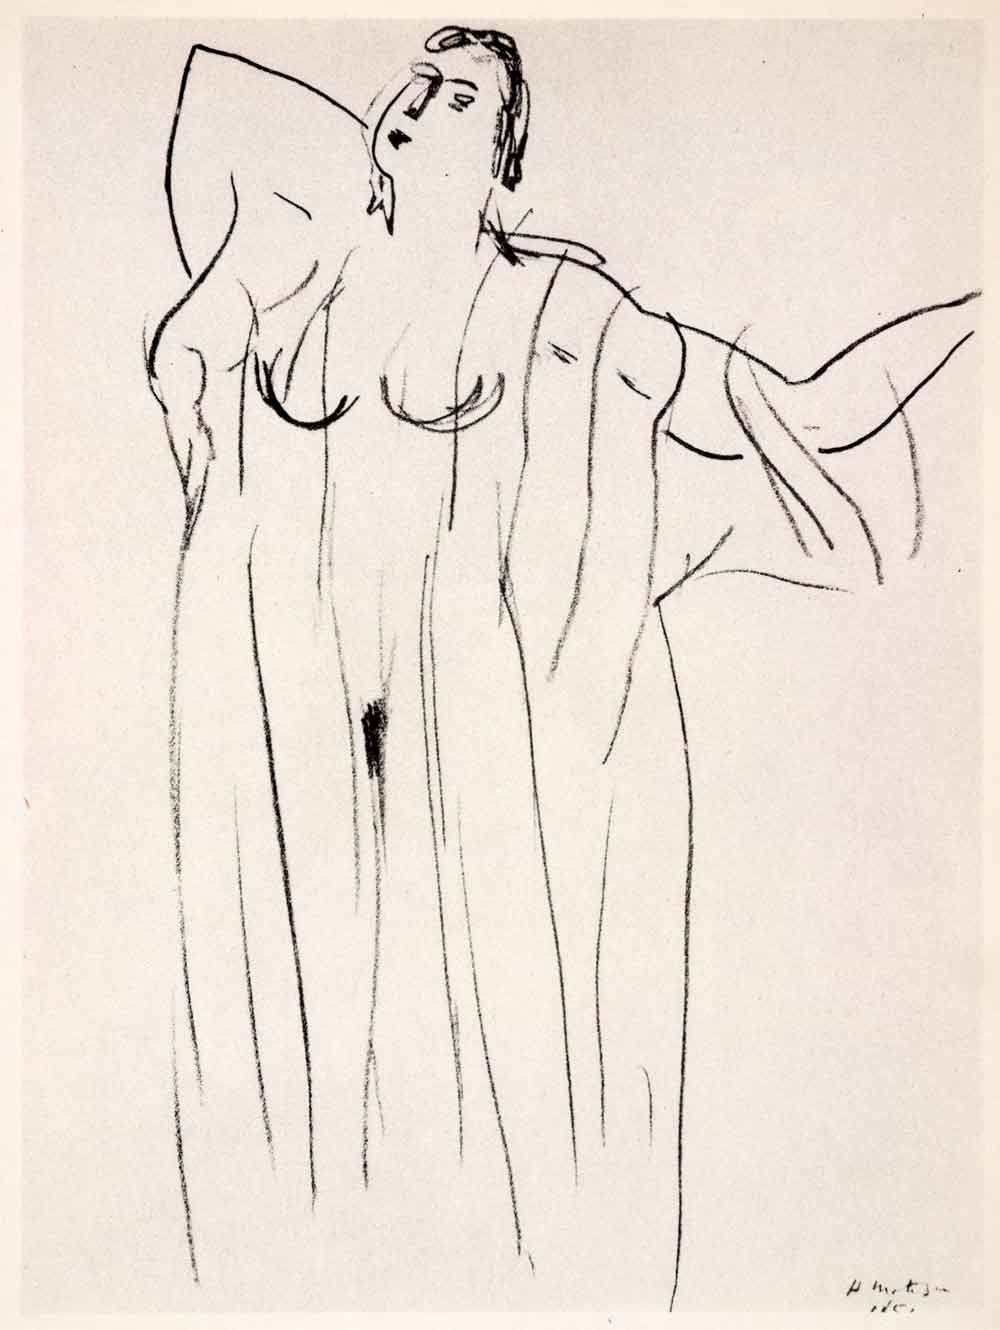 1969 photolithograph henri matisse pencil sketch nude woman lingerie modern xdb7 matisse drawing matisse art